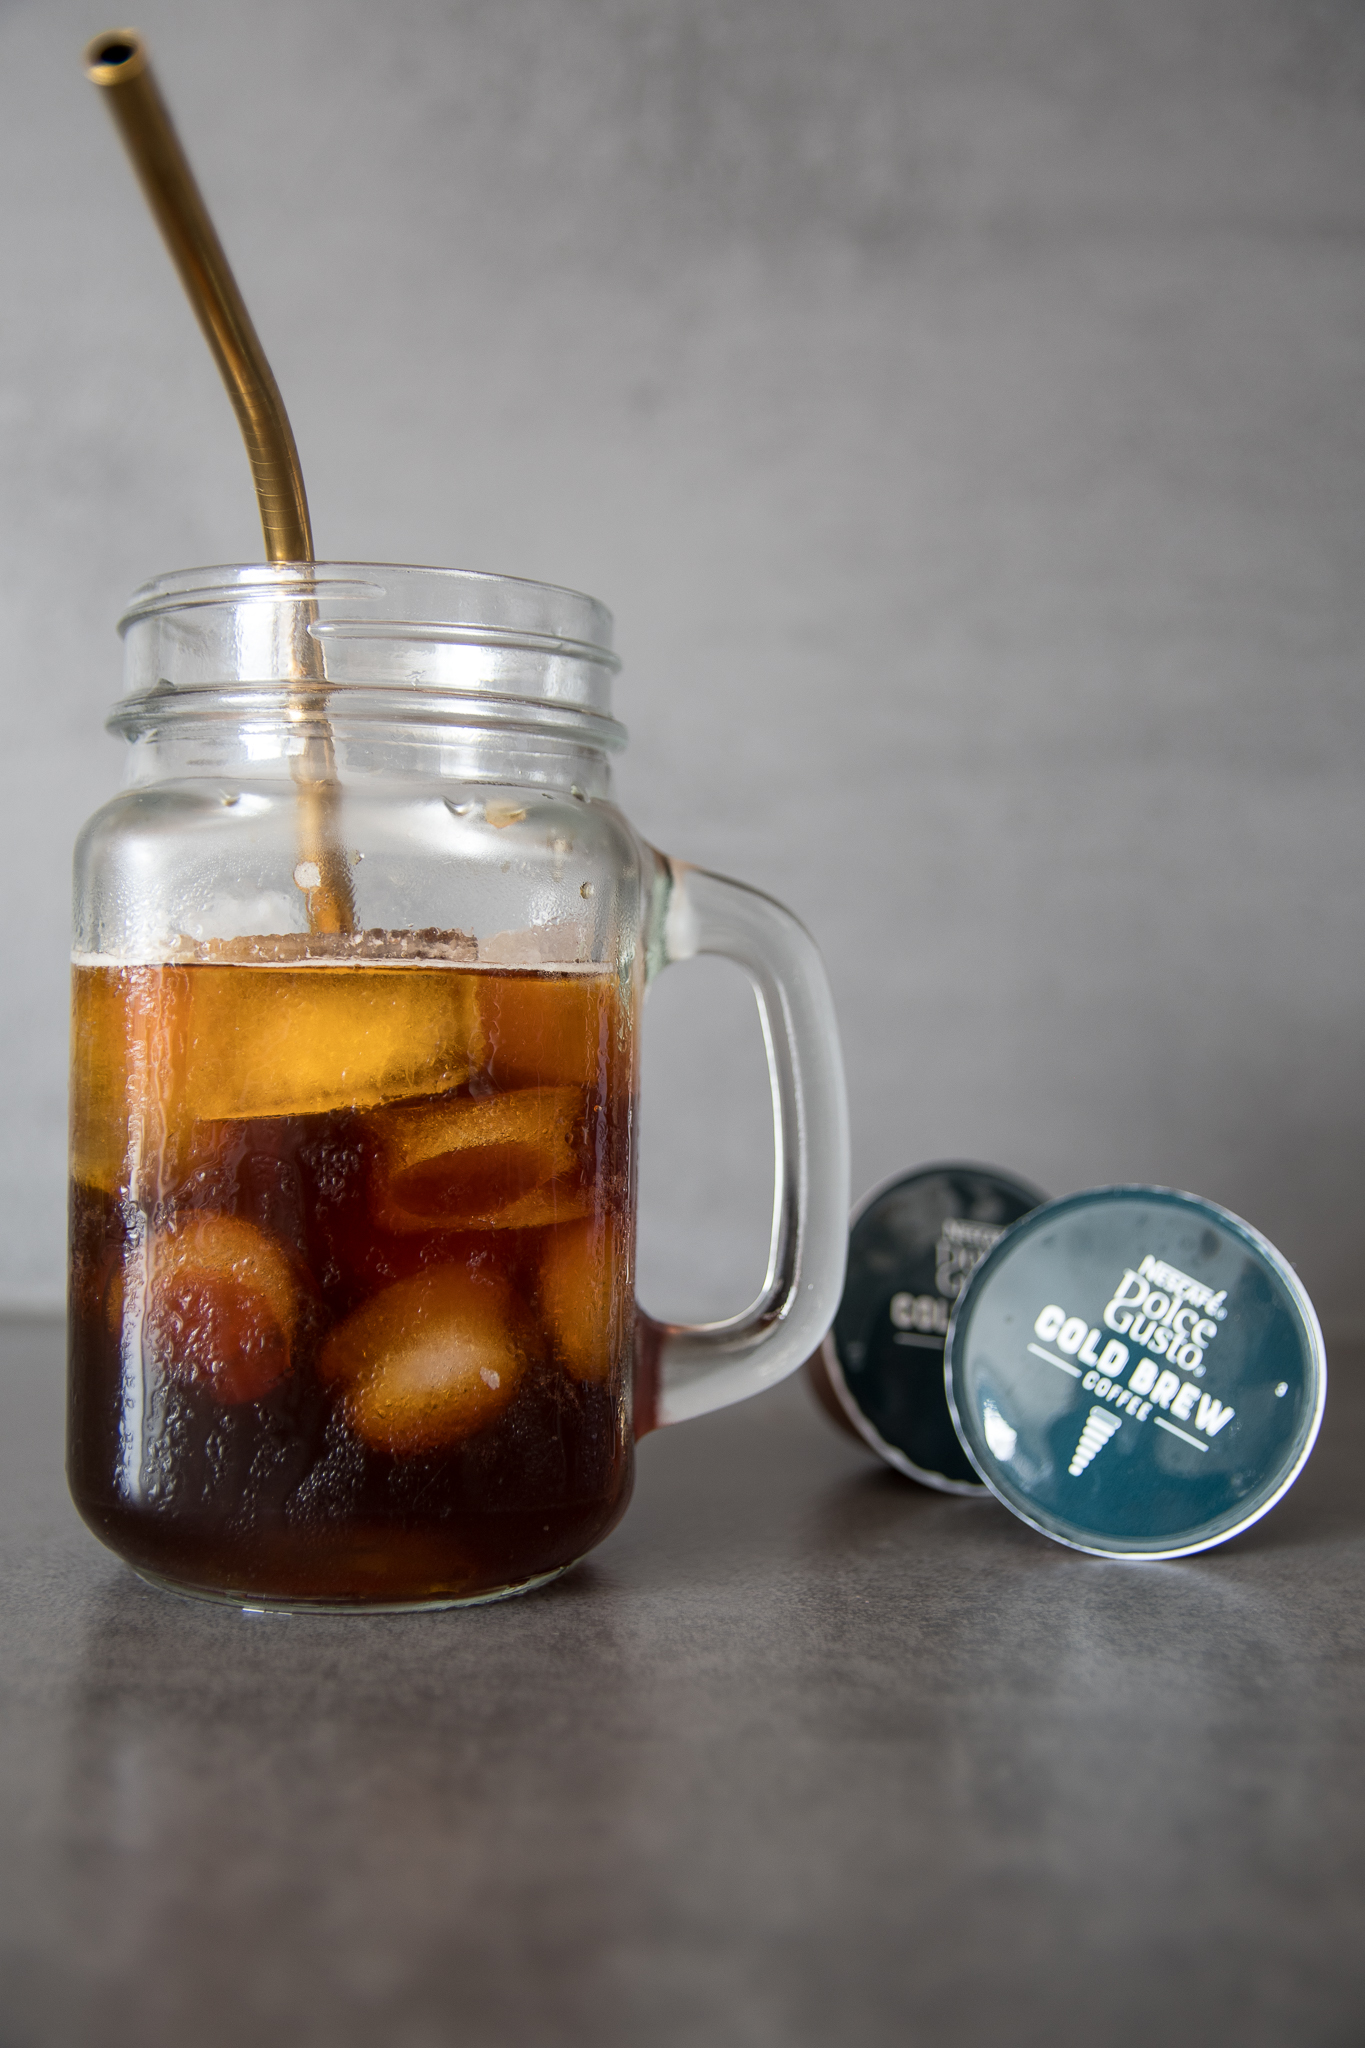 cold brew Dolce gusto